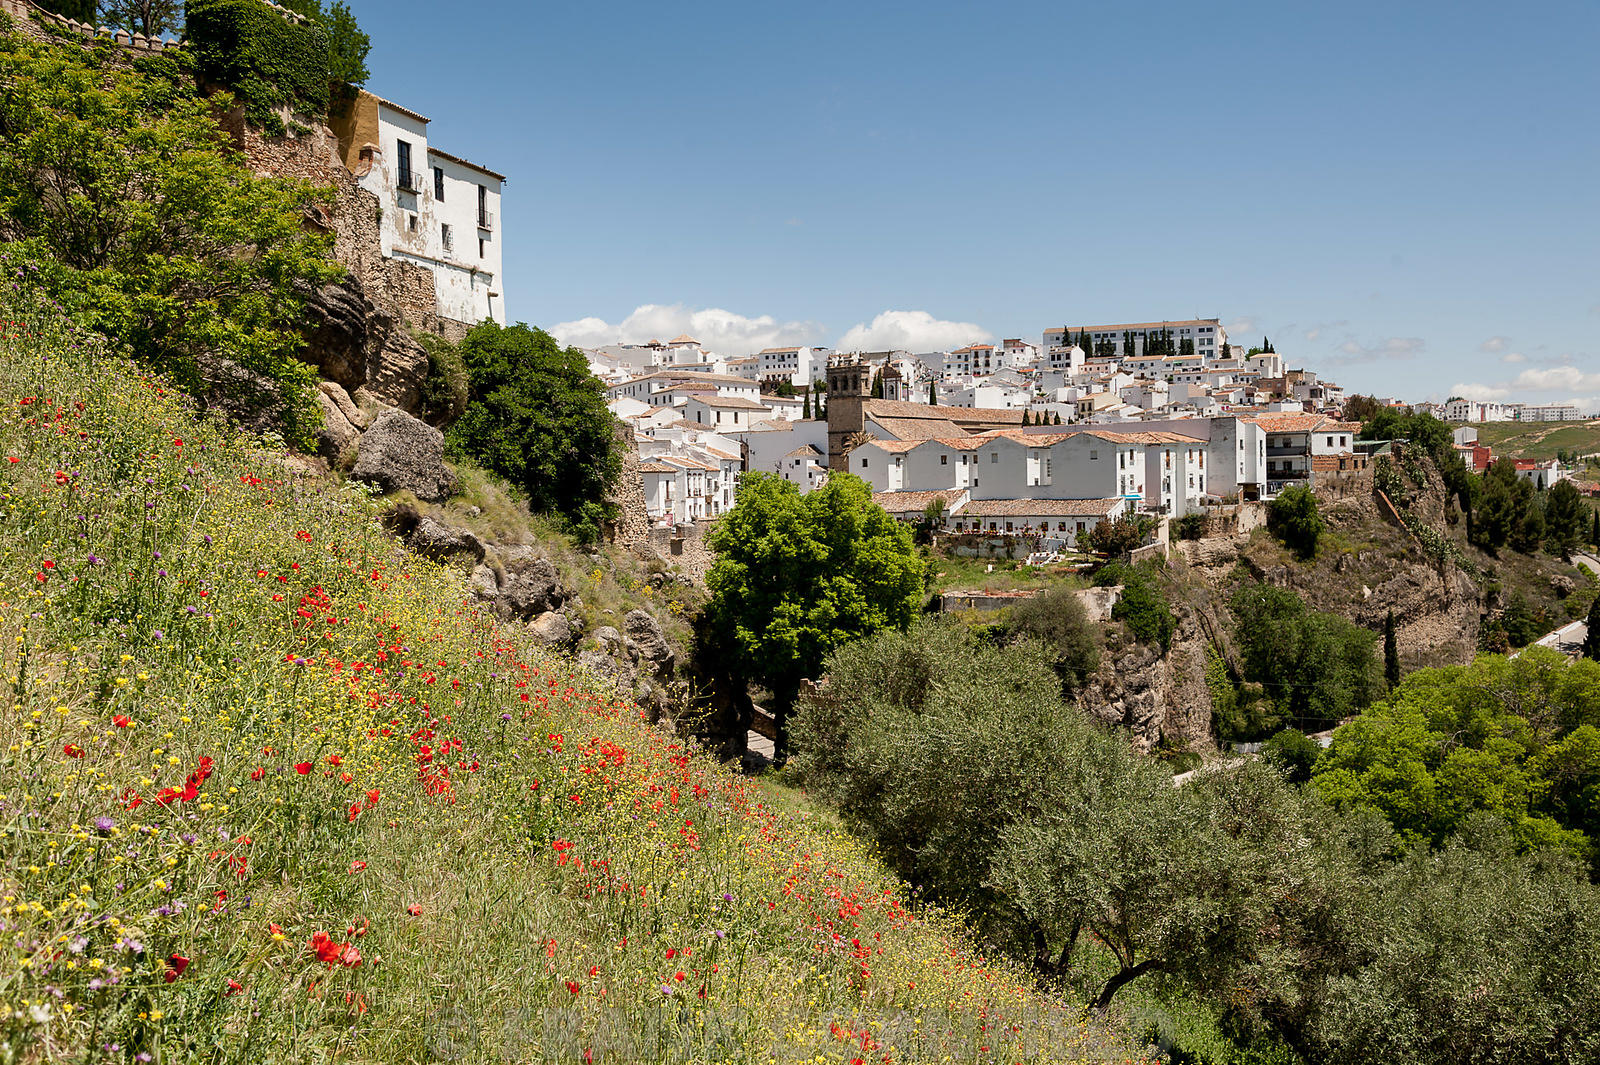 View of Ronda in Spain